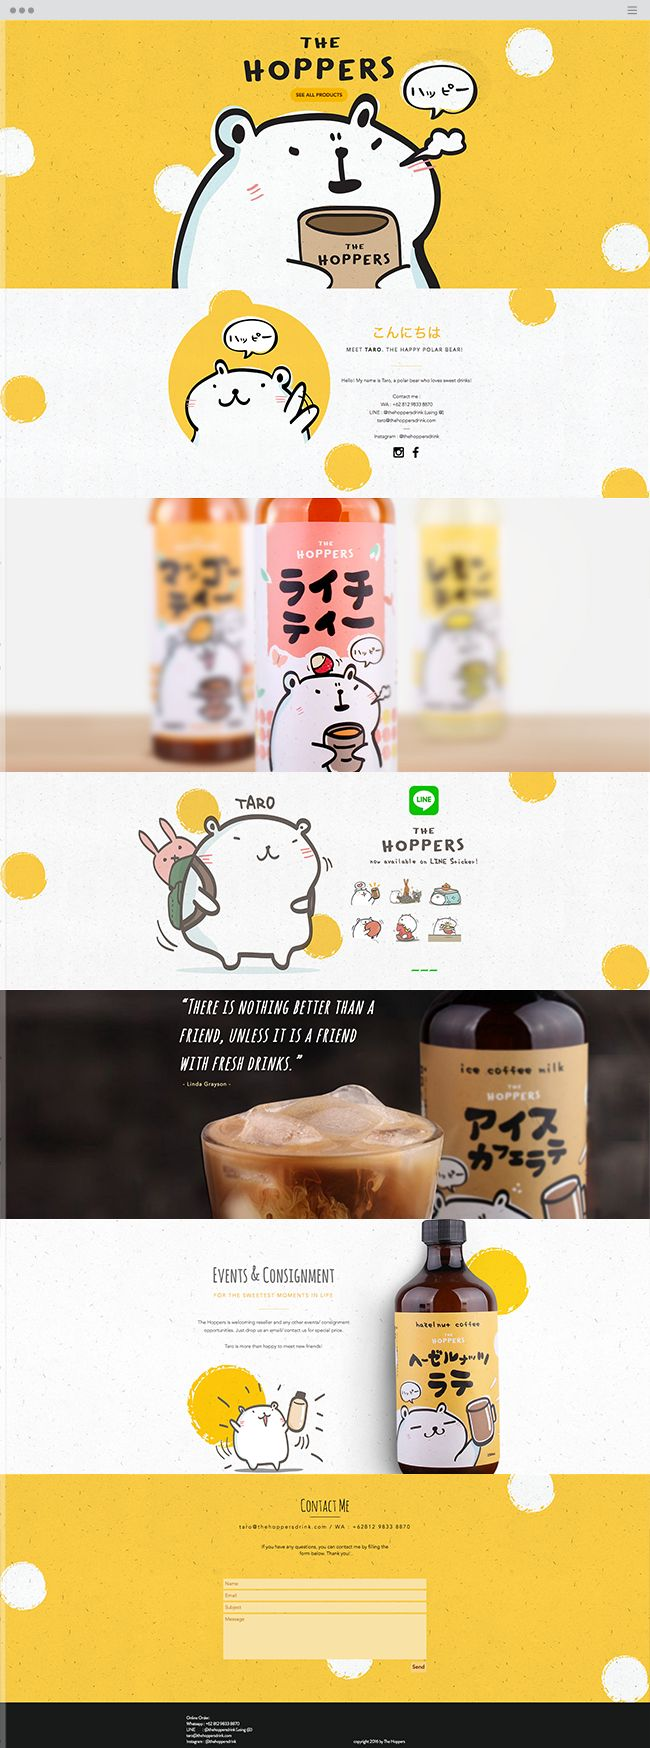 The Hoppers Drink | Unique Coffee and Tea Bottled Drinks